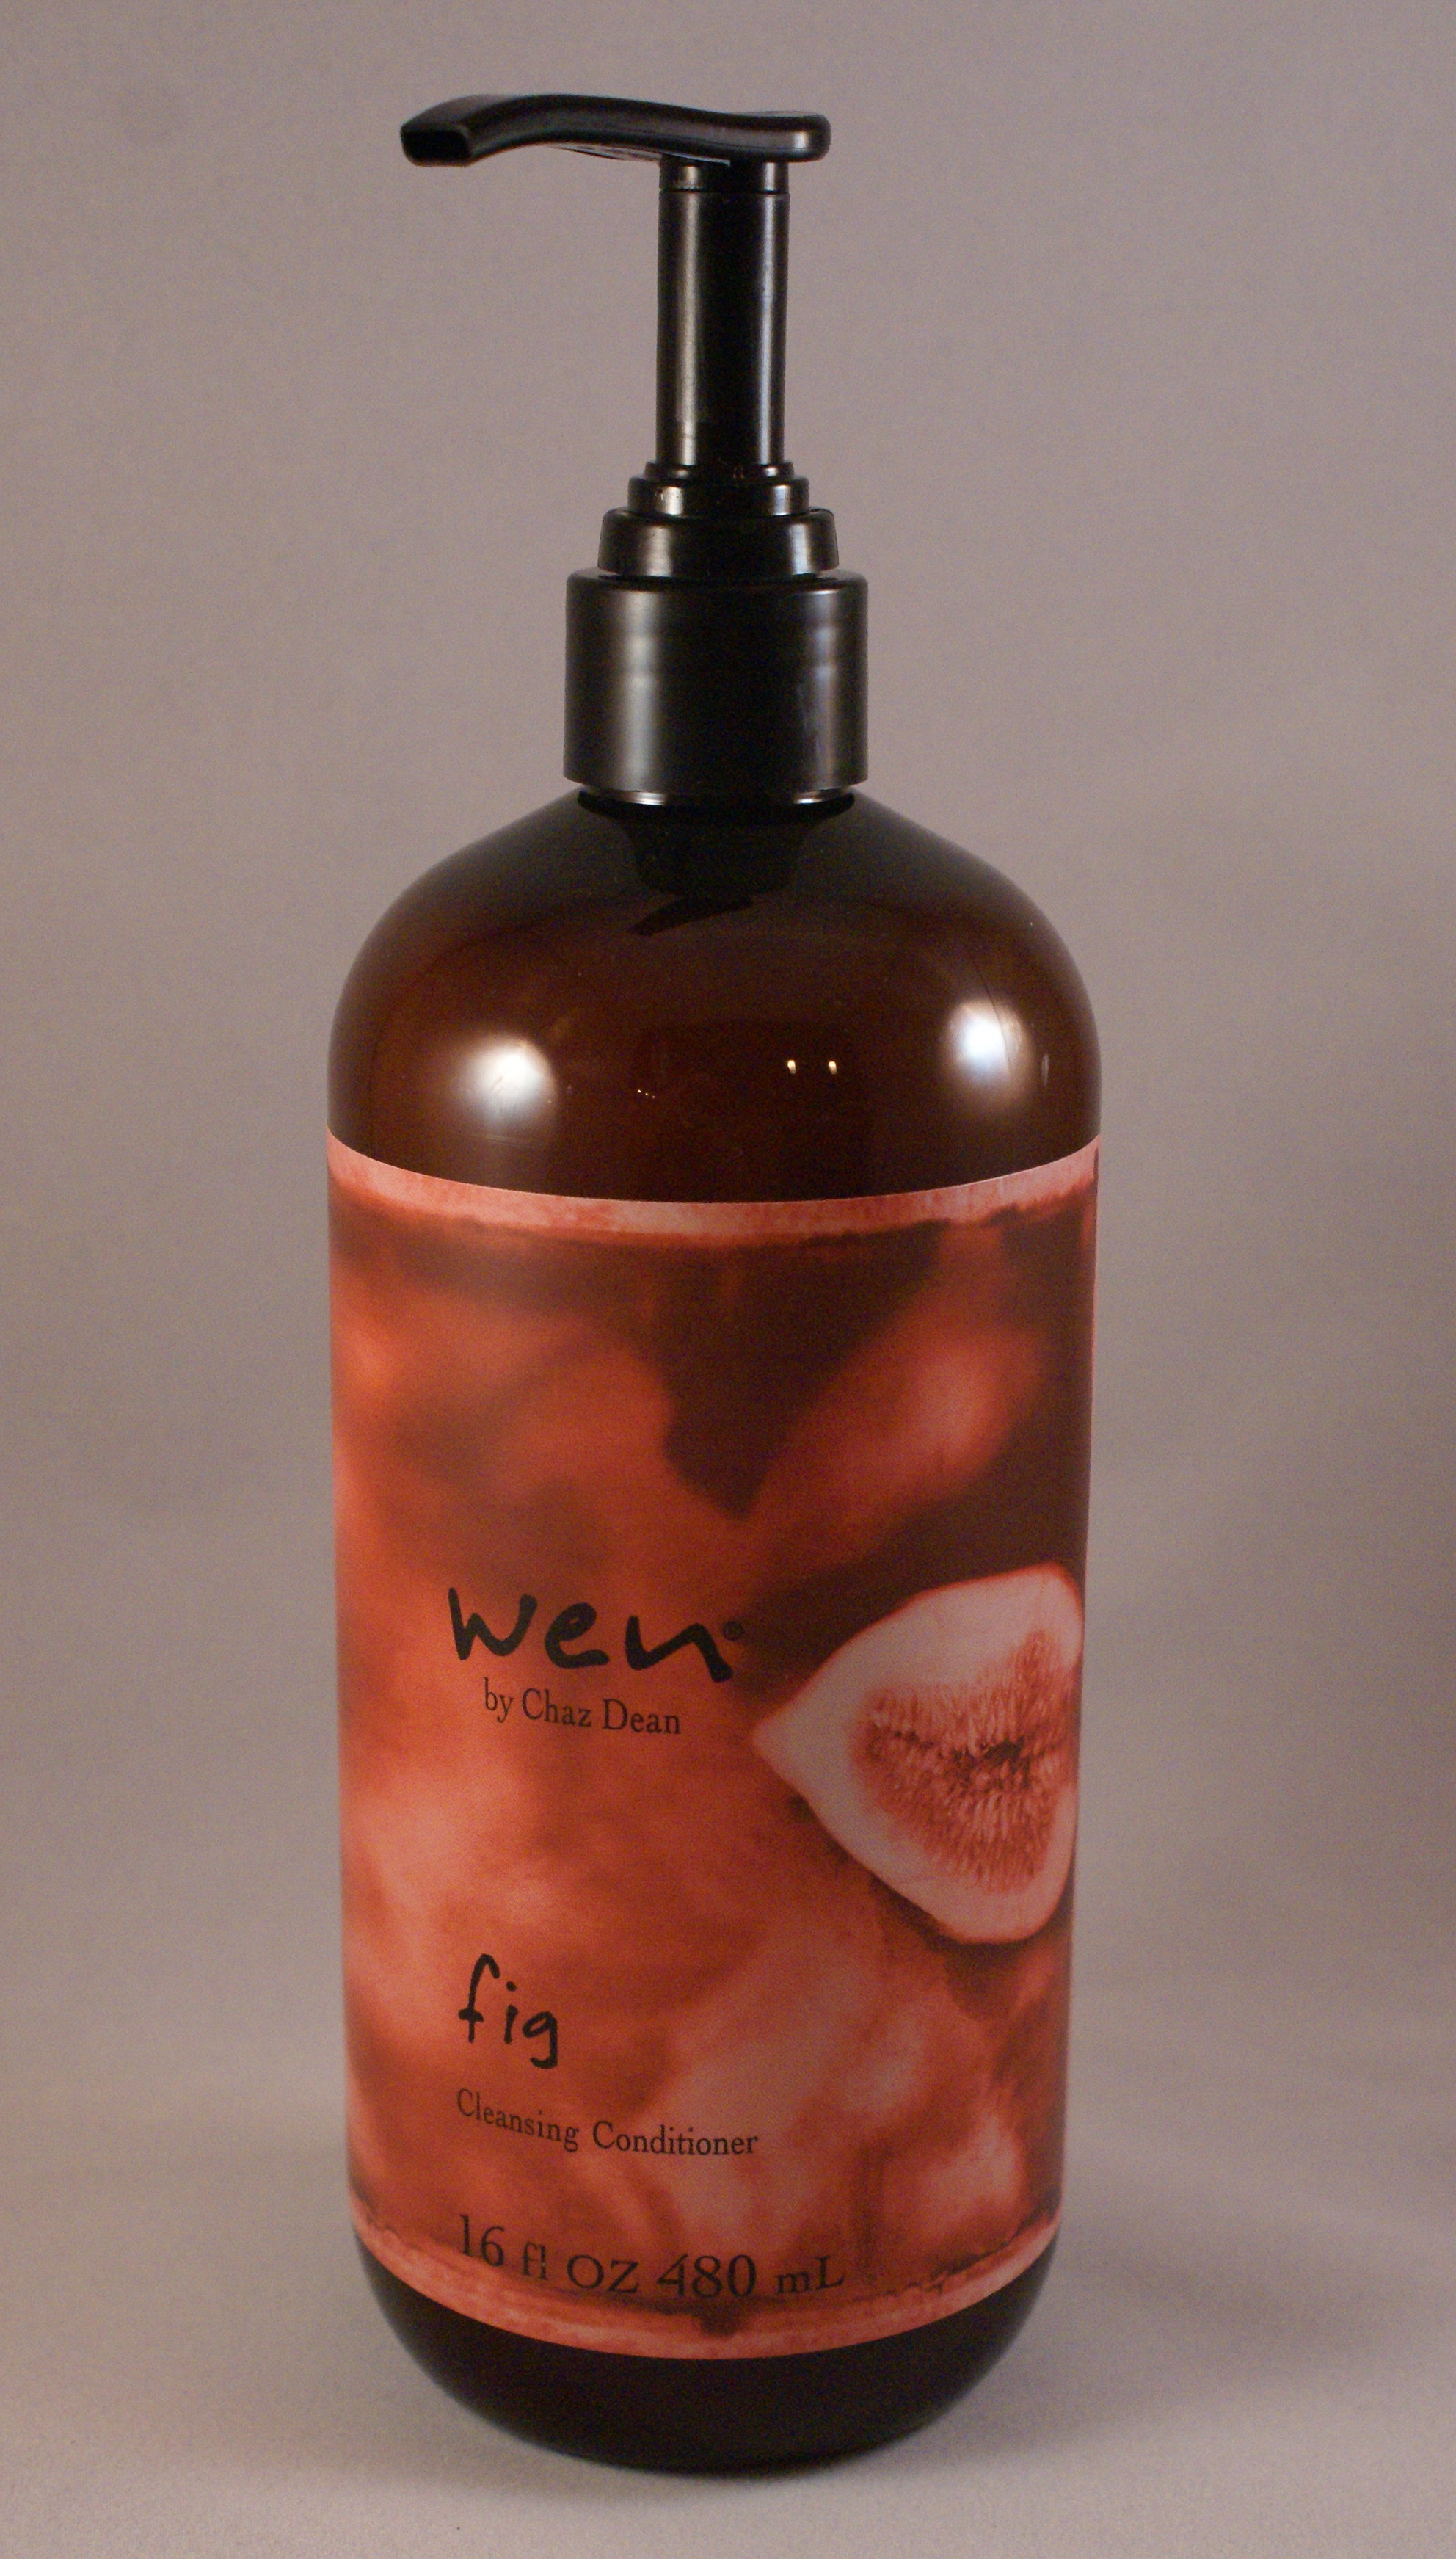 WEN Cleansing Conditioner | The Other End of the Brush